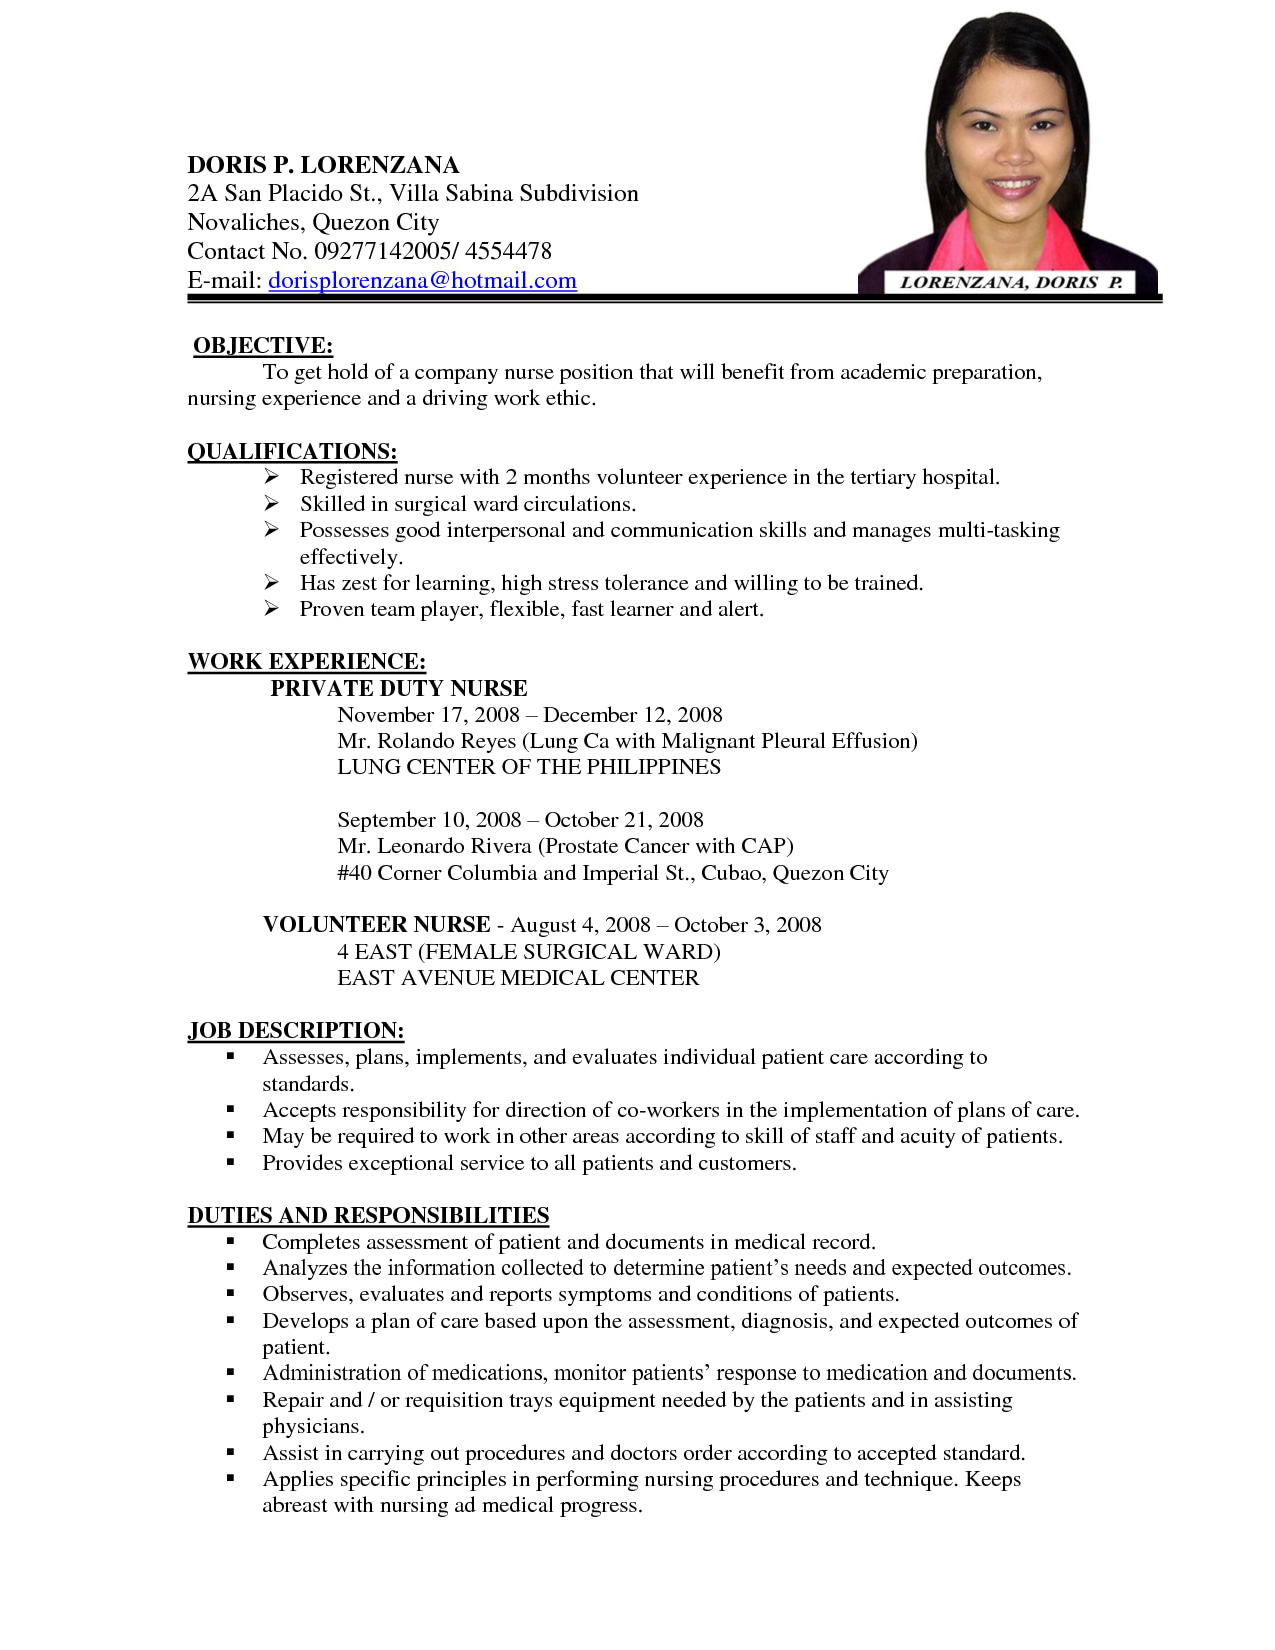 nursing resume template canada examples of nurse resumes er nurse resume example nurse resume proper resume